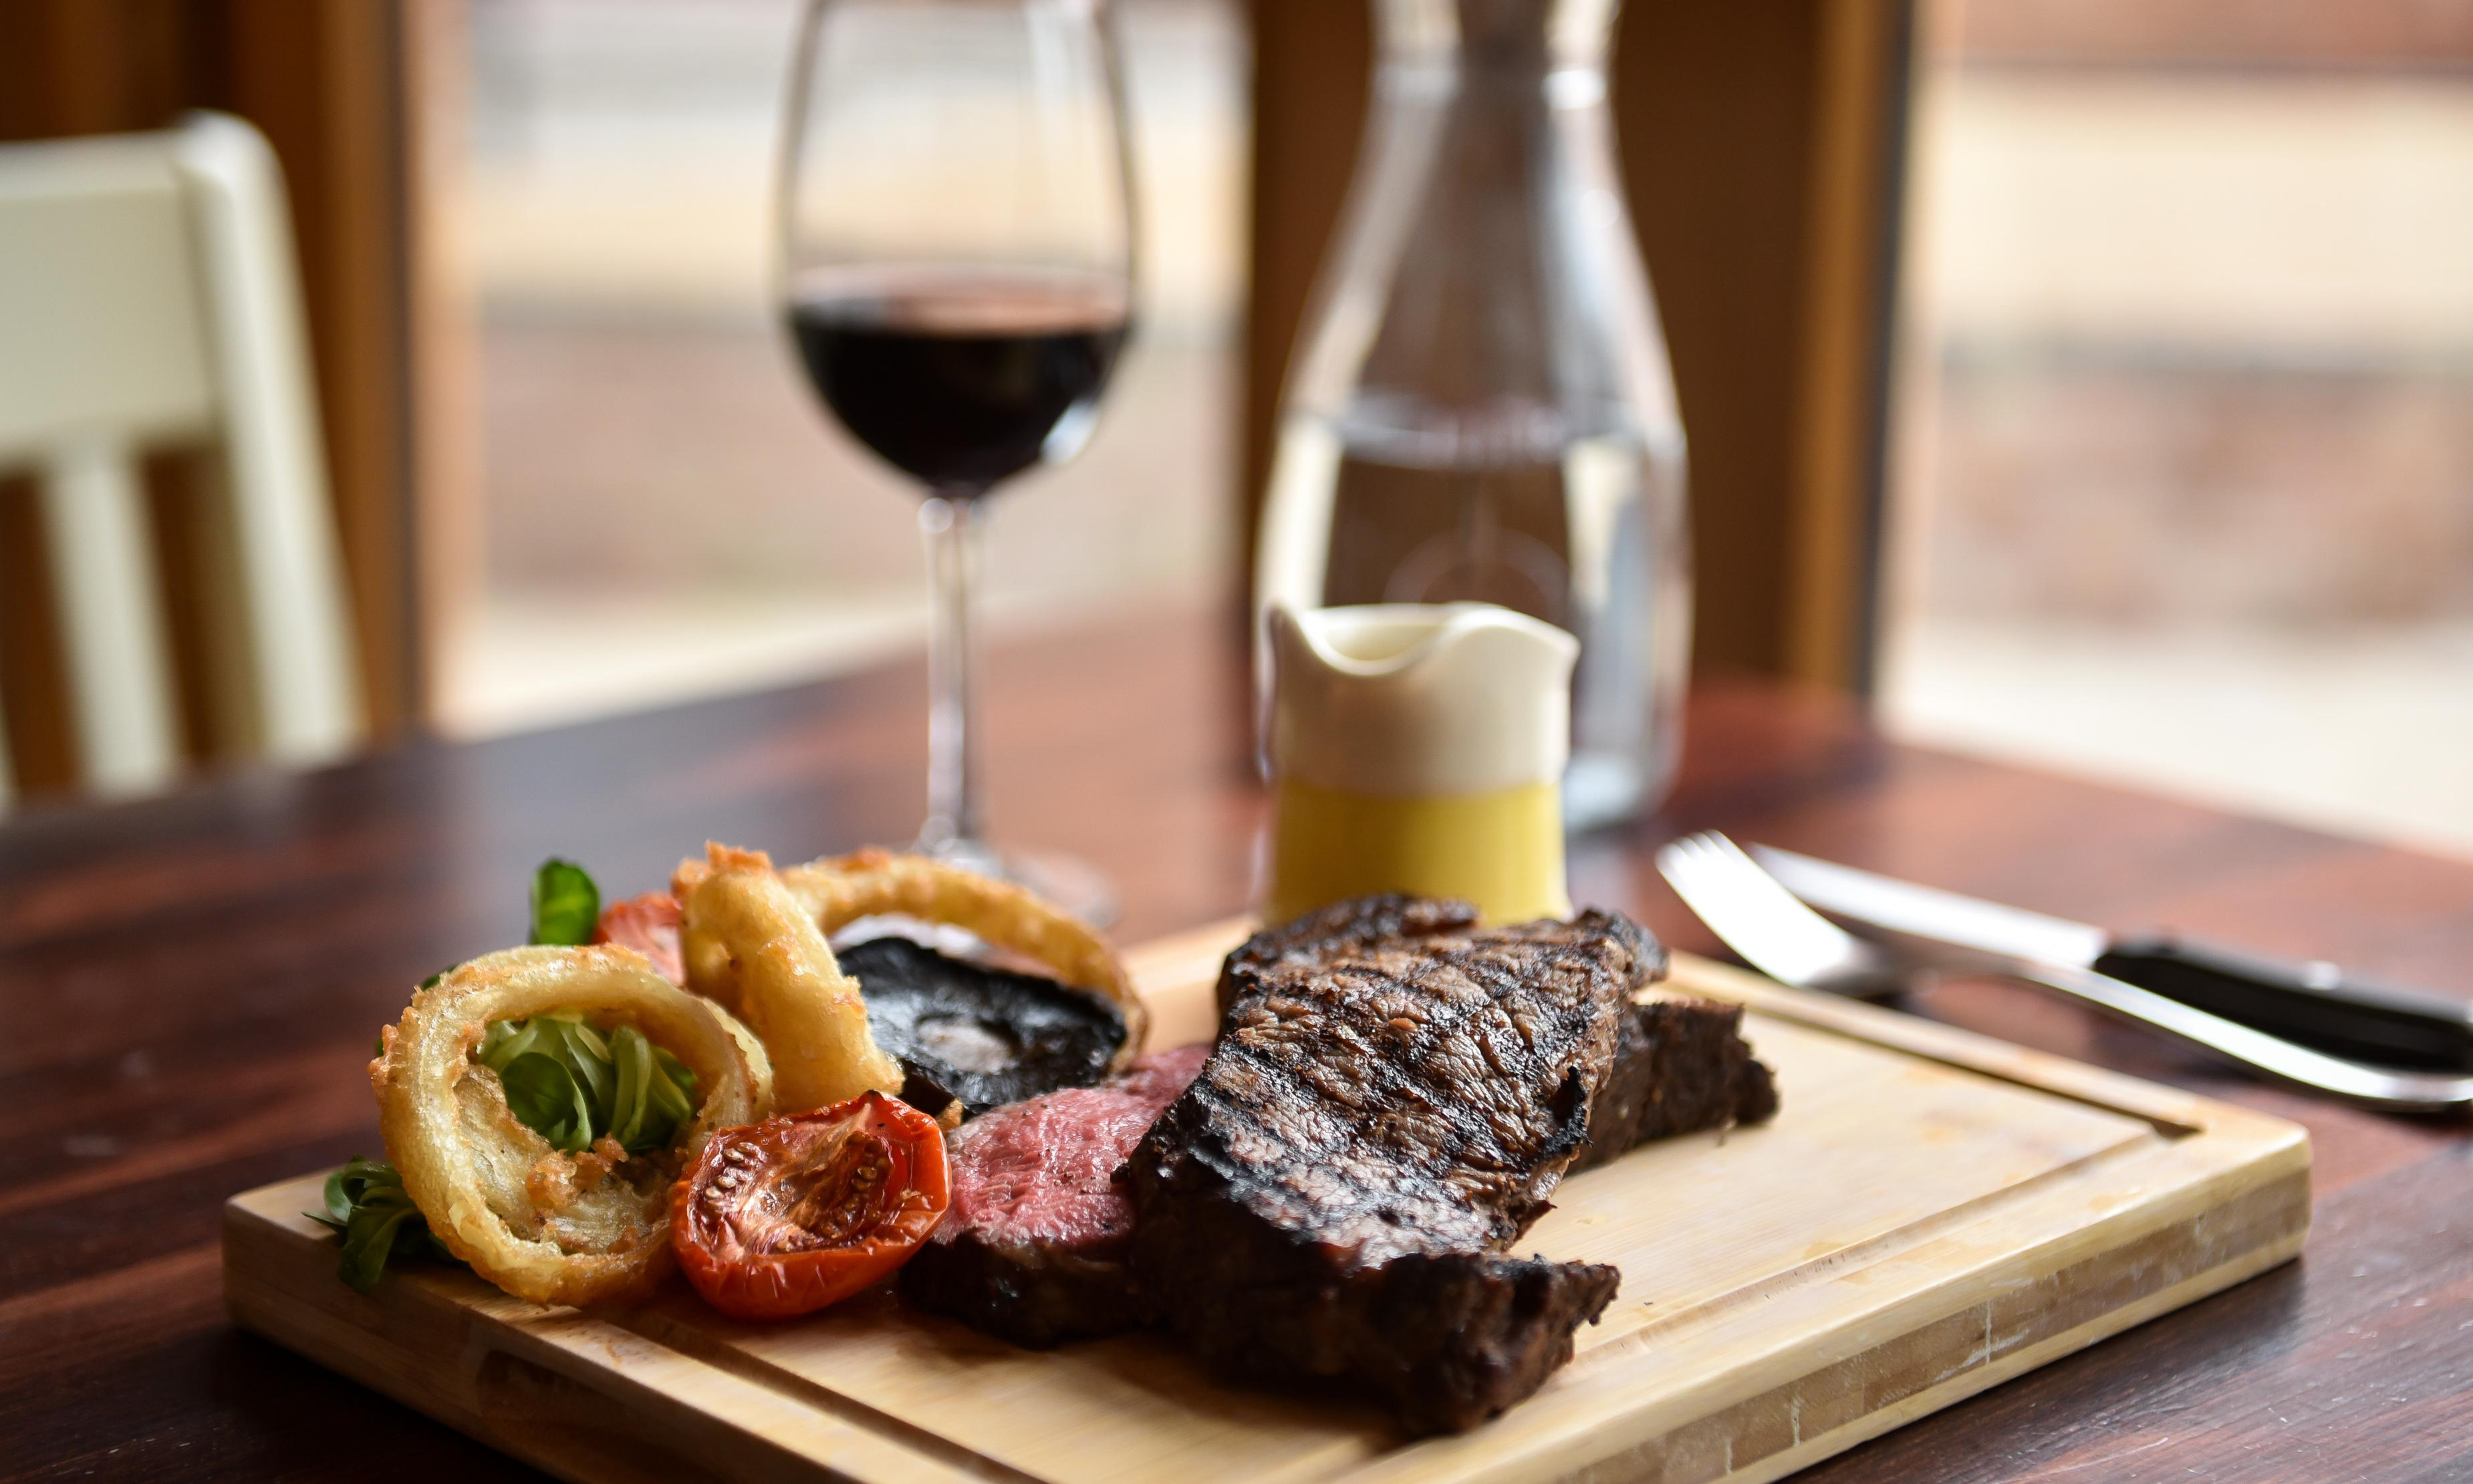 Judge who said borrowers could cut down on steak and shiraz labelled 'out of touch'